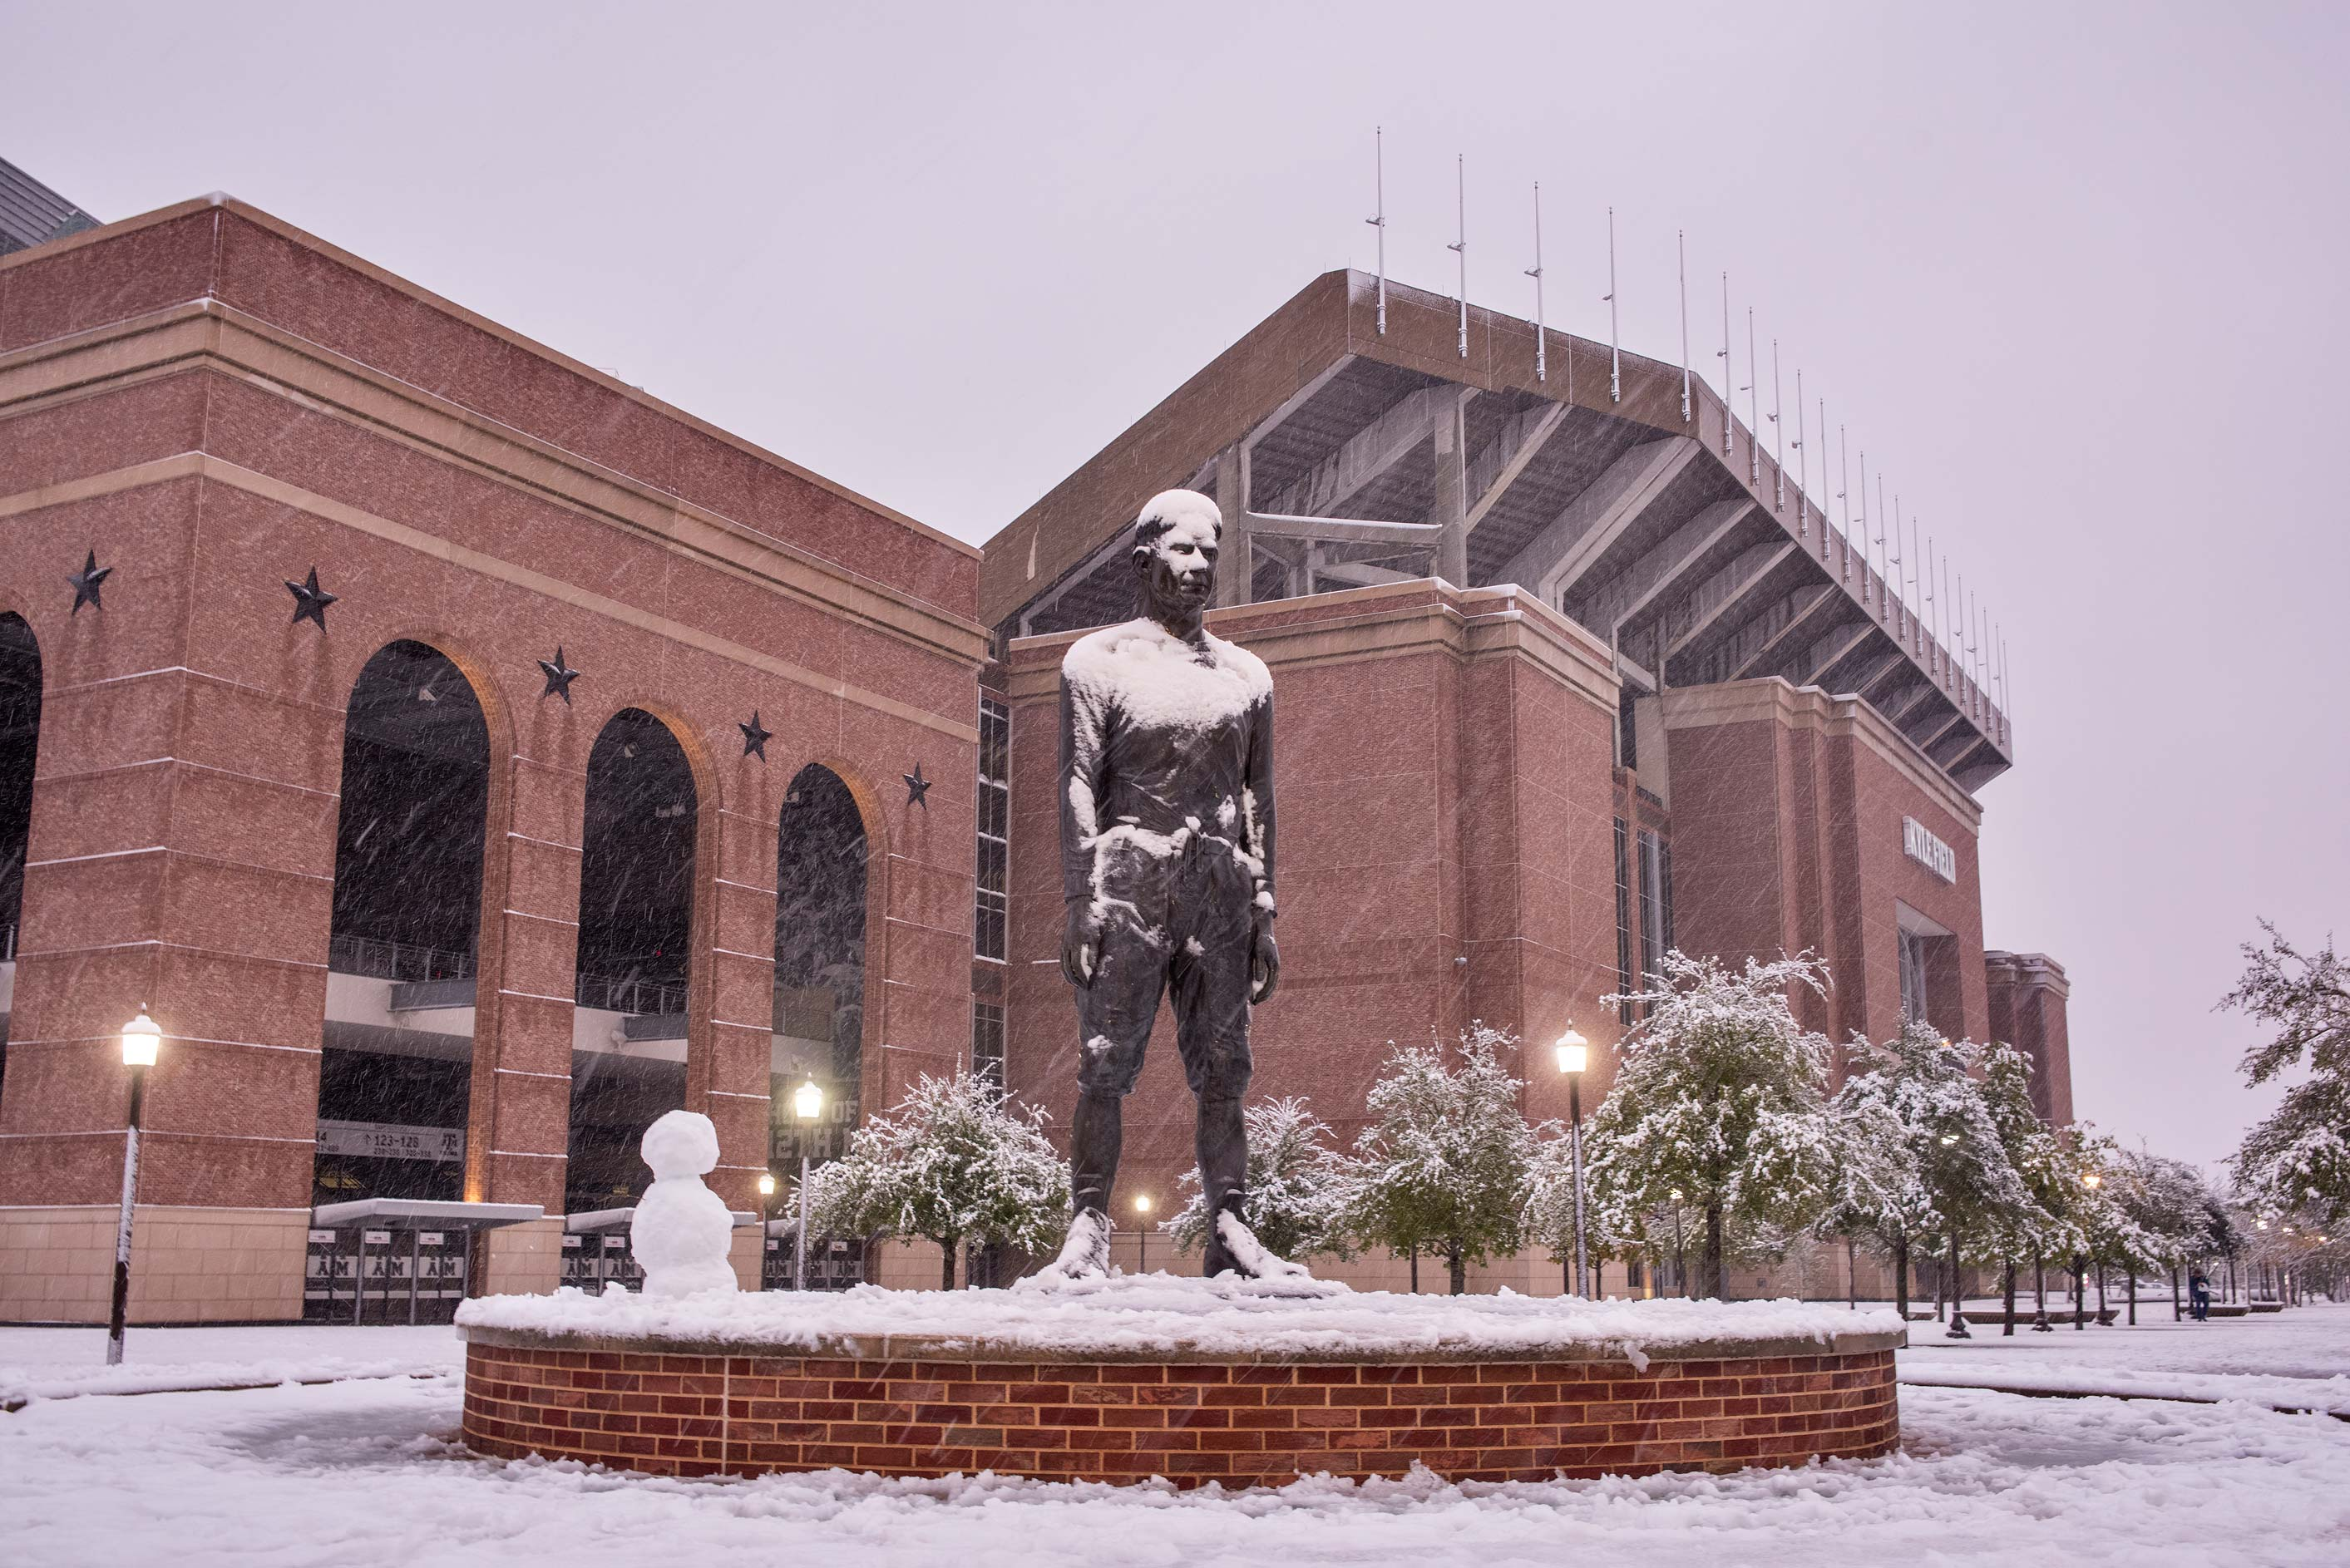 12th Man Statue in snow on campus of Texas A&M University. College Station, Texas